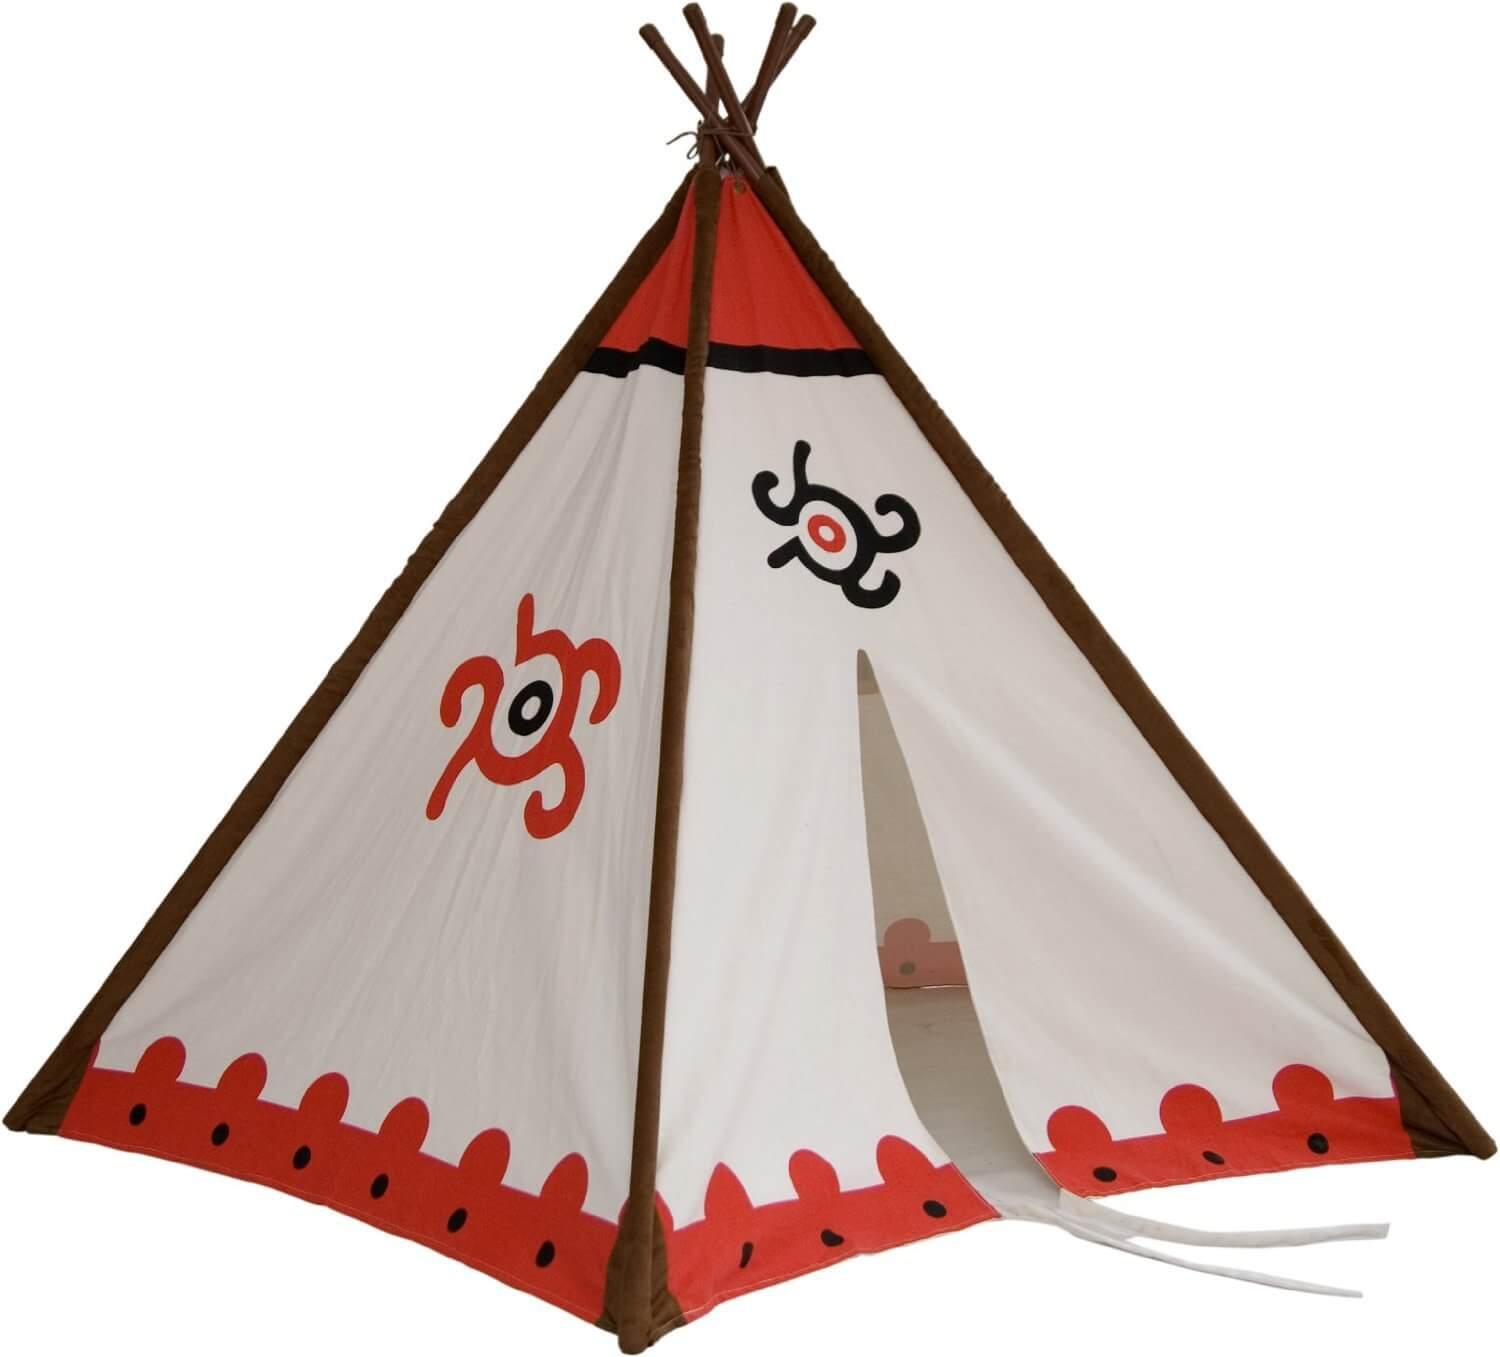 2gether teepee tipi indianerzelt test tipi zelt kinderzimmer. Black Bedroom Furniture Sets. Home Design Ideas